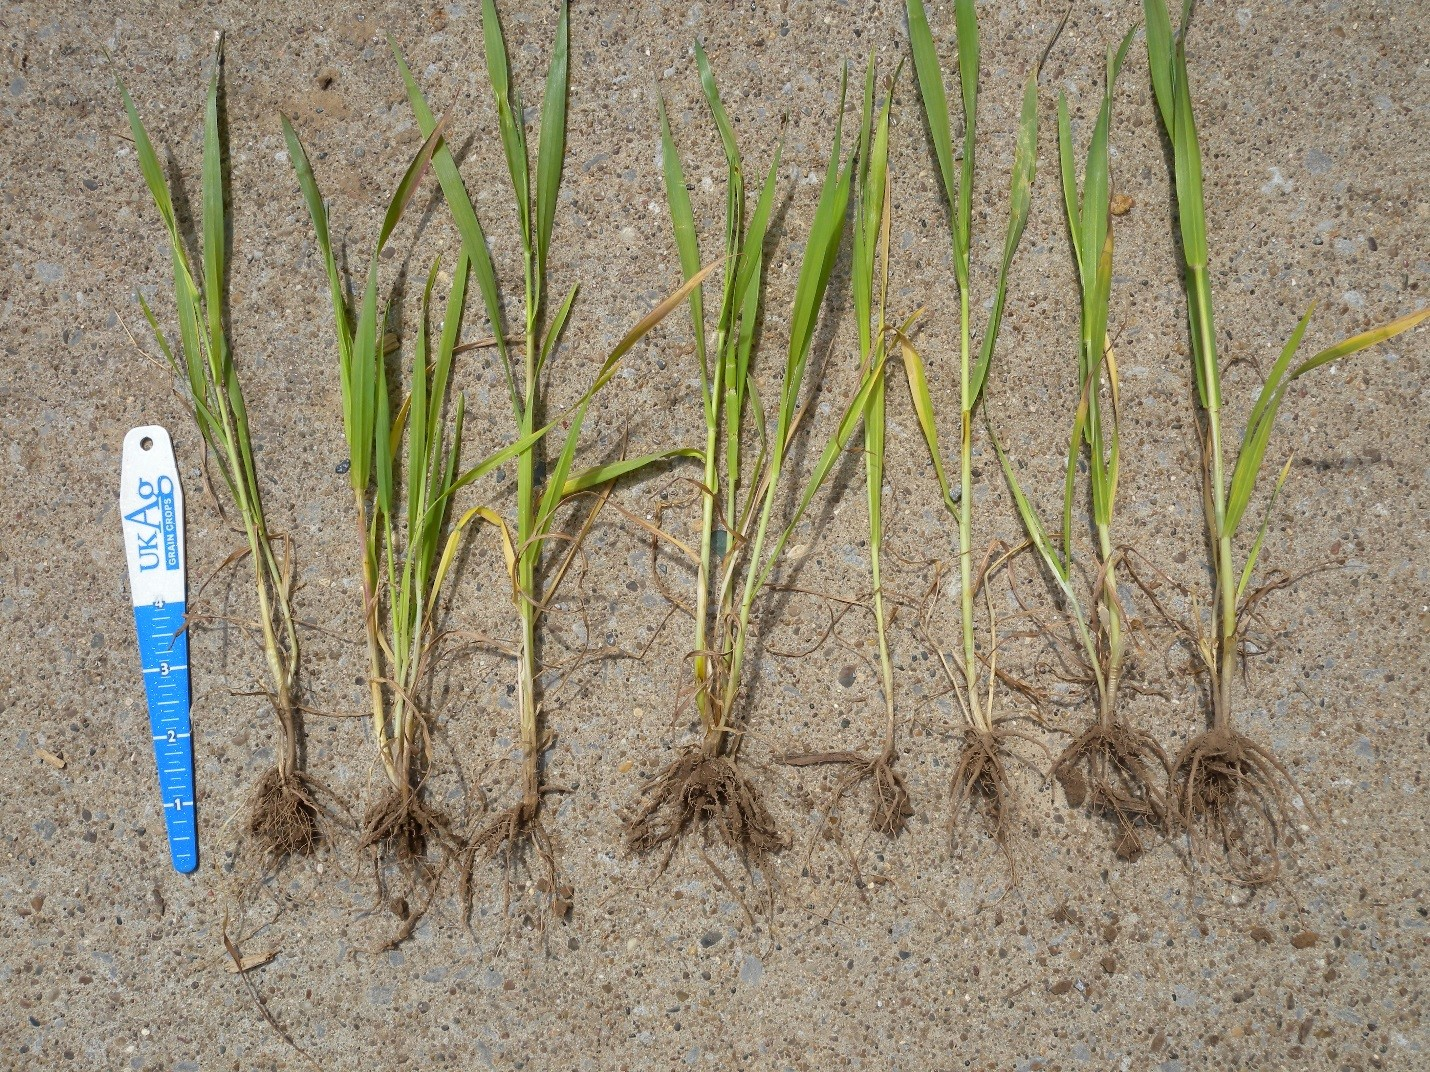 Wheat plant with greatly reduced root system. Photo: Brenda Kennedy, Plant Disease Diagnostic Laboratory, Princeton.